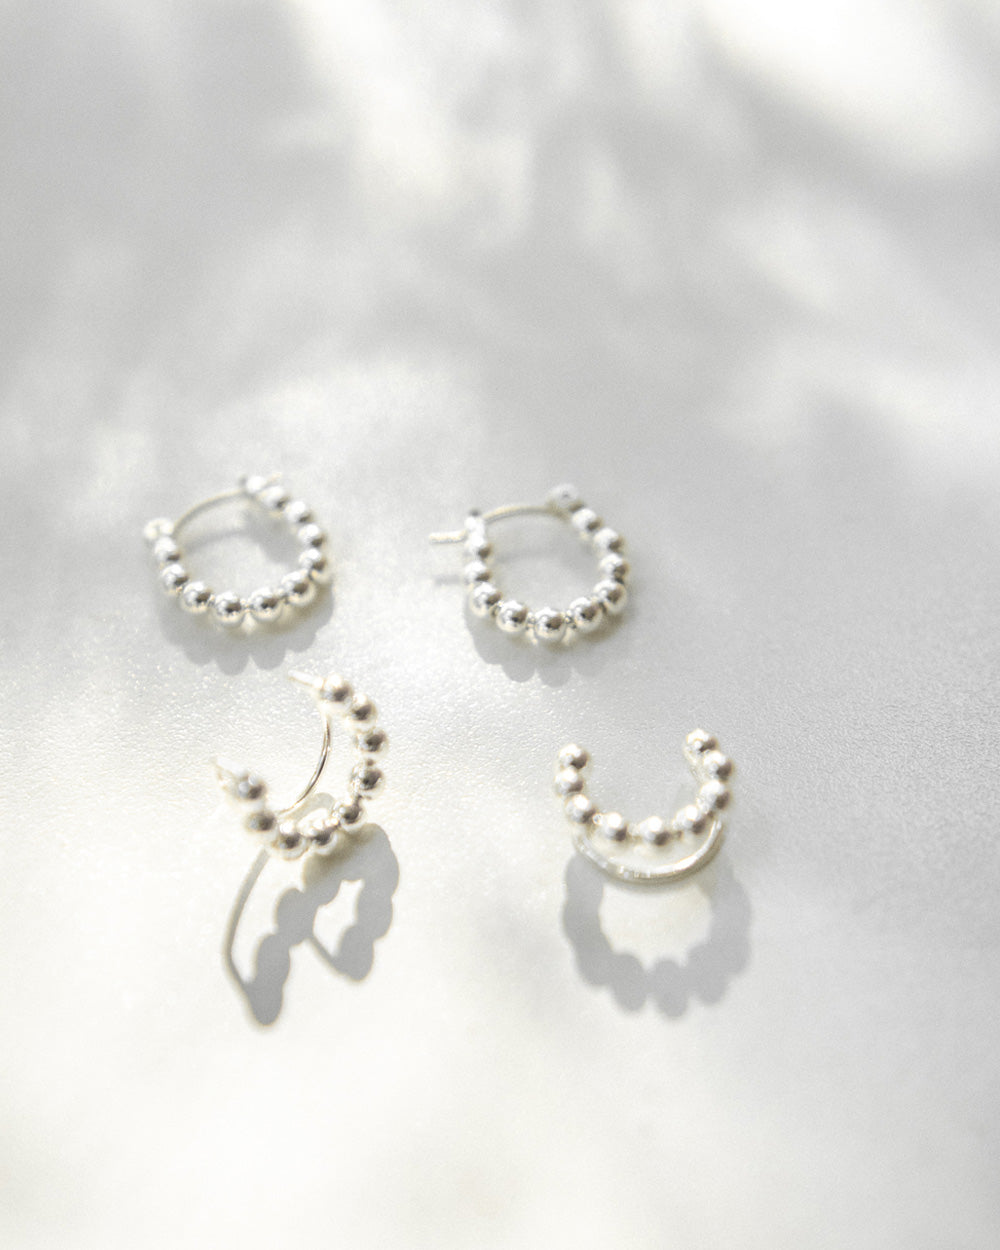 Modern style hoop earrings and ear cuffs for a silver ear stack